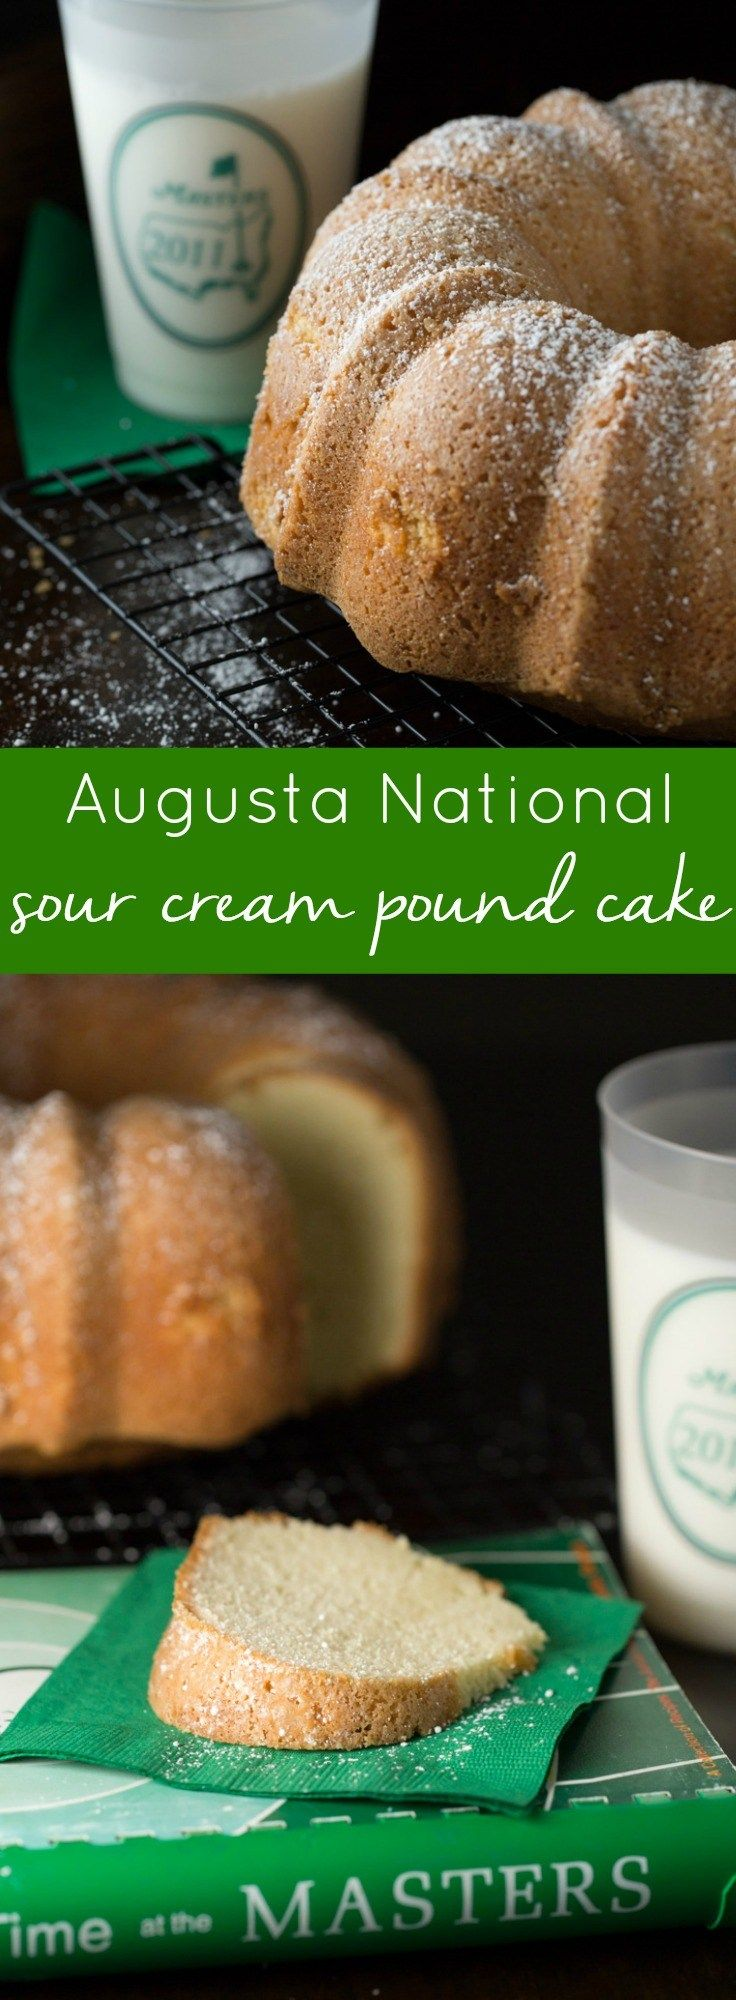 Simple sweet pound cake to southerners is